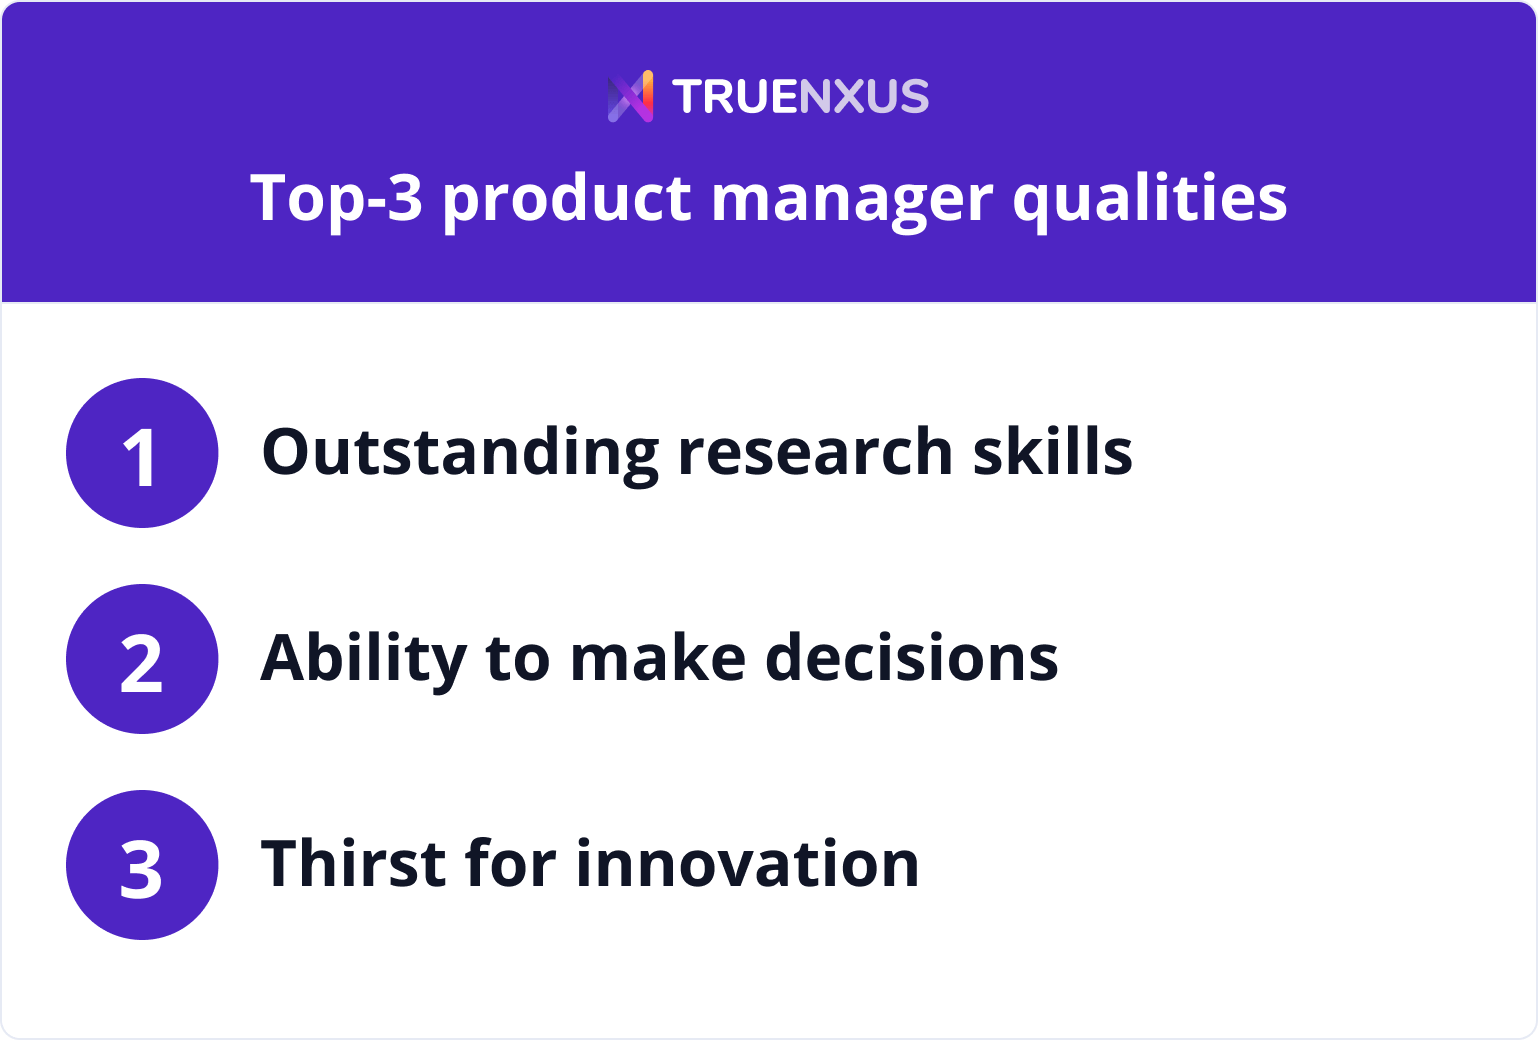 Top-3 product manager qualities infographic